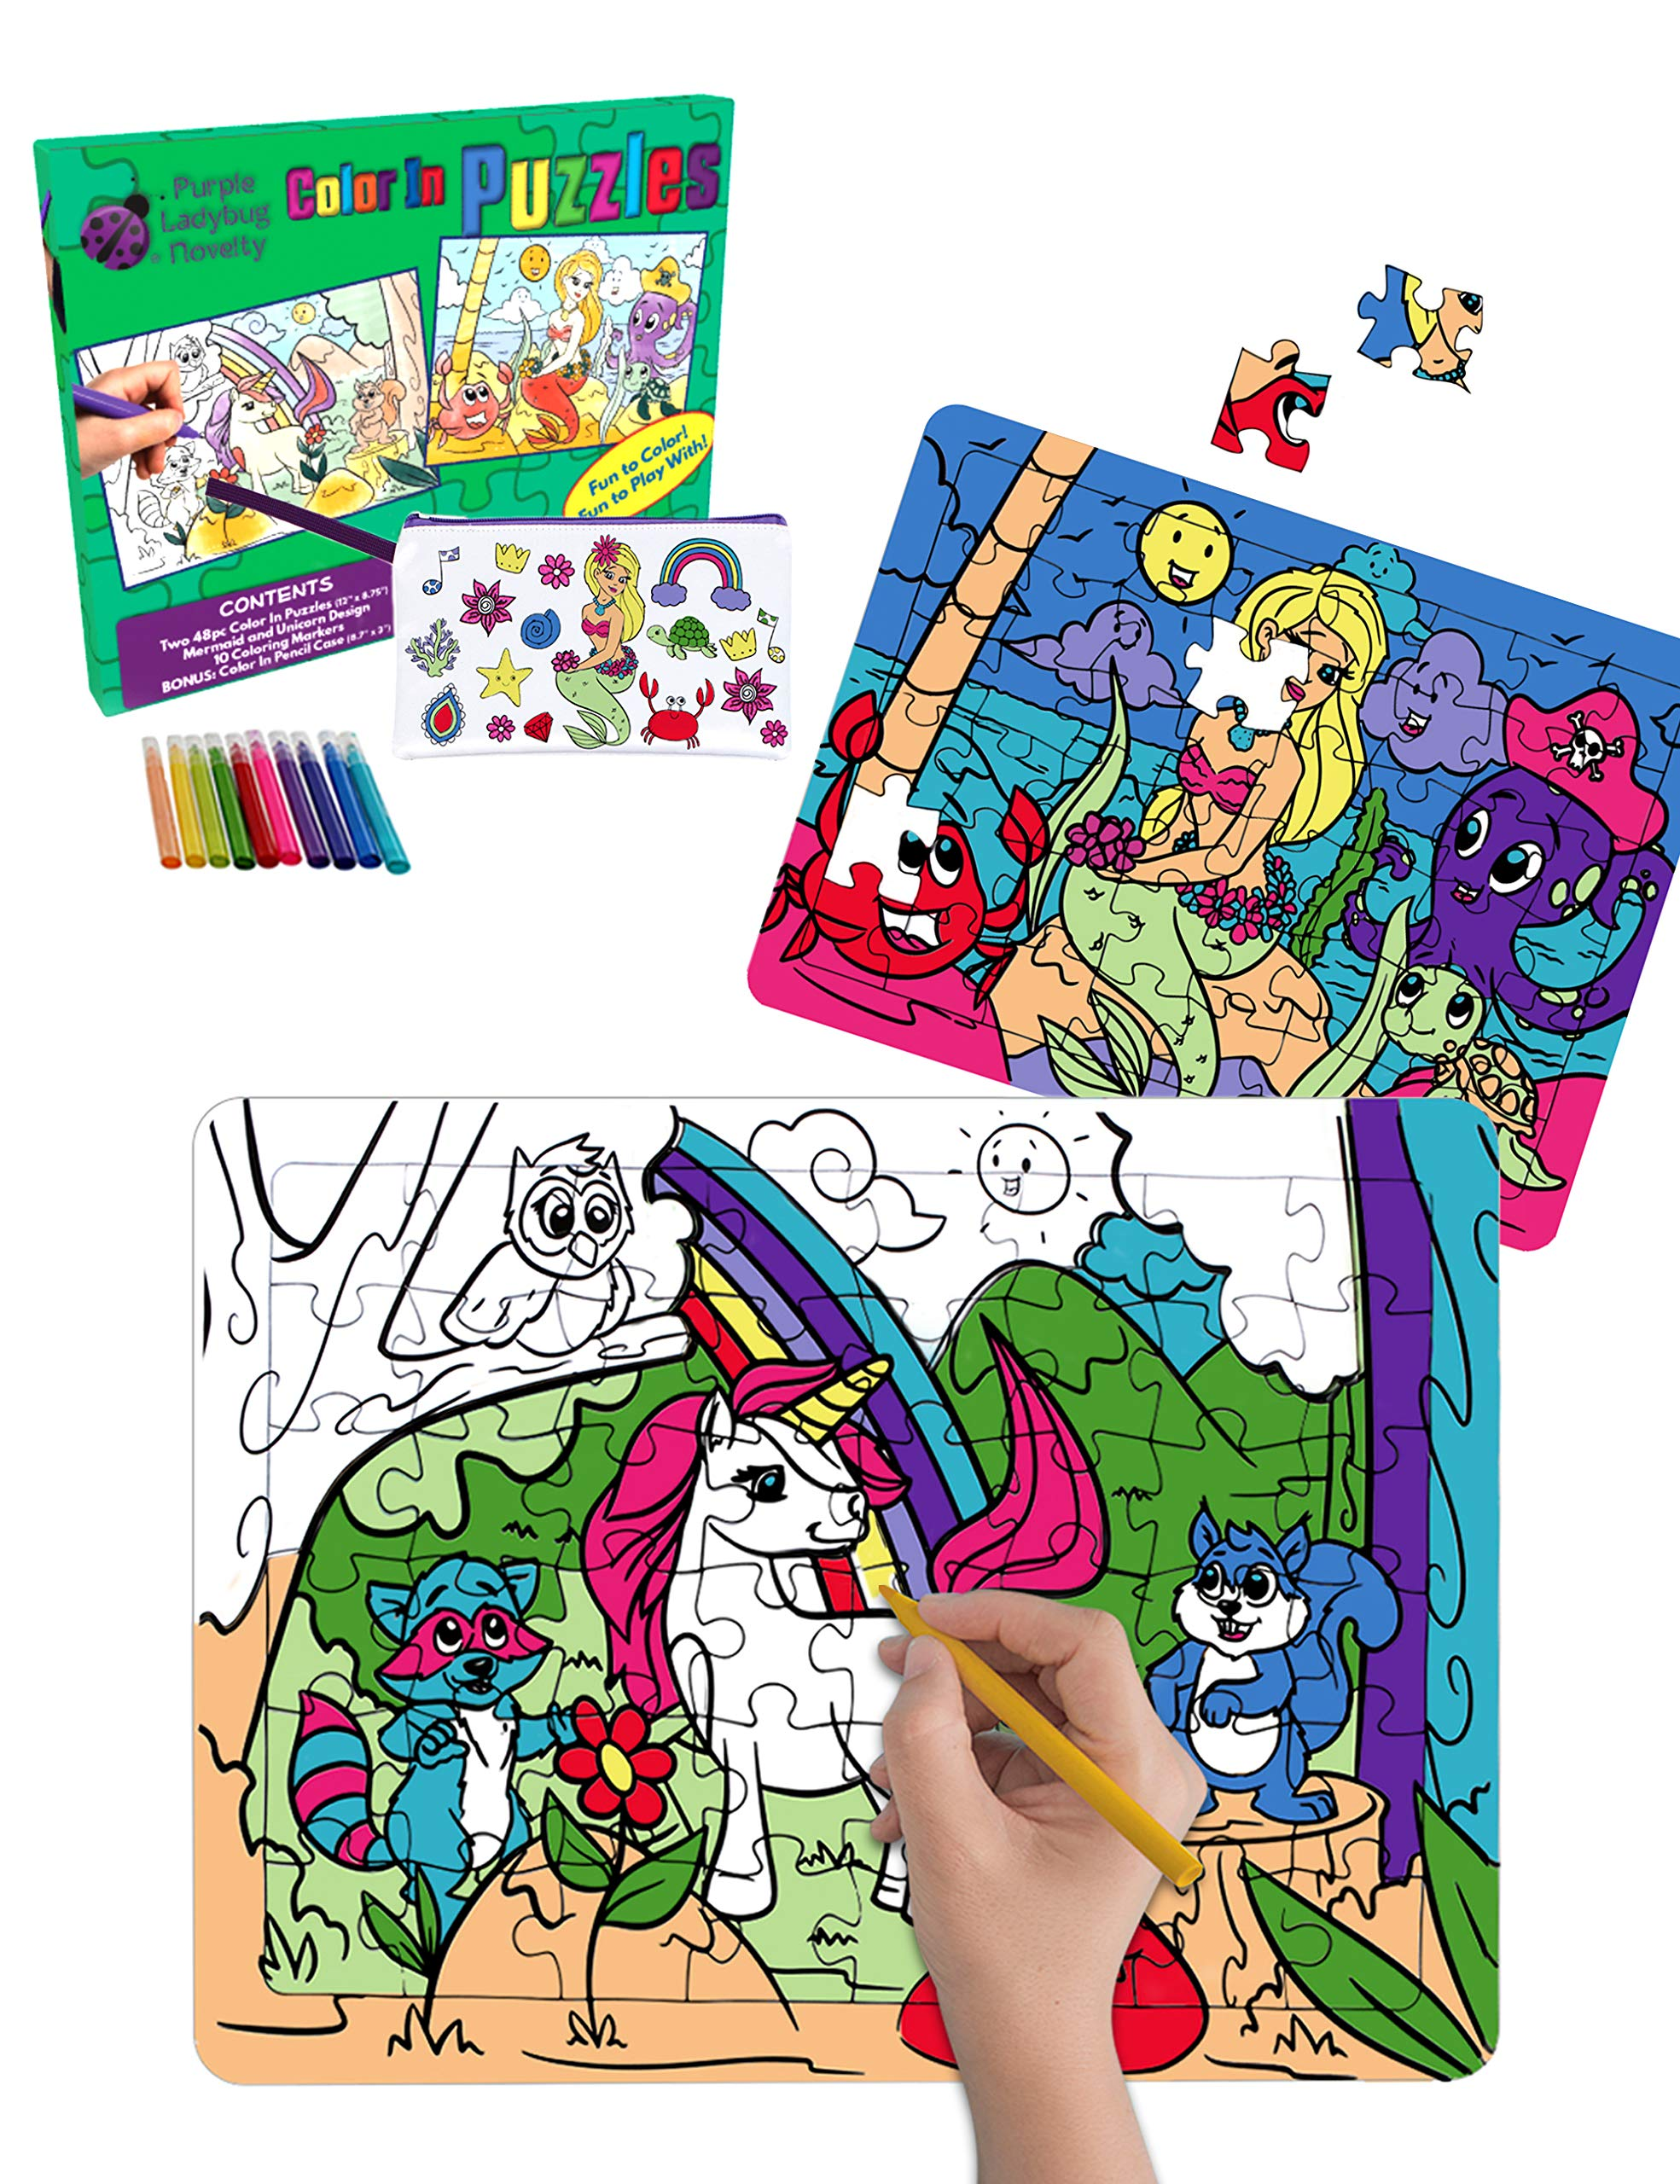 Purple Ladybug Jigsaw Puzzles Craft Kit for Girls with Unicorn & Mermaid Designs - 2 Colour in Toys for Kids + a Bonus Pencil Case - Great Easter Gift Idea for Girl, Fun Arts & Crafts Set for Children